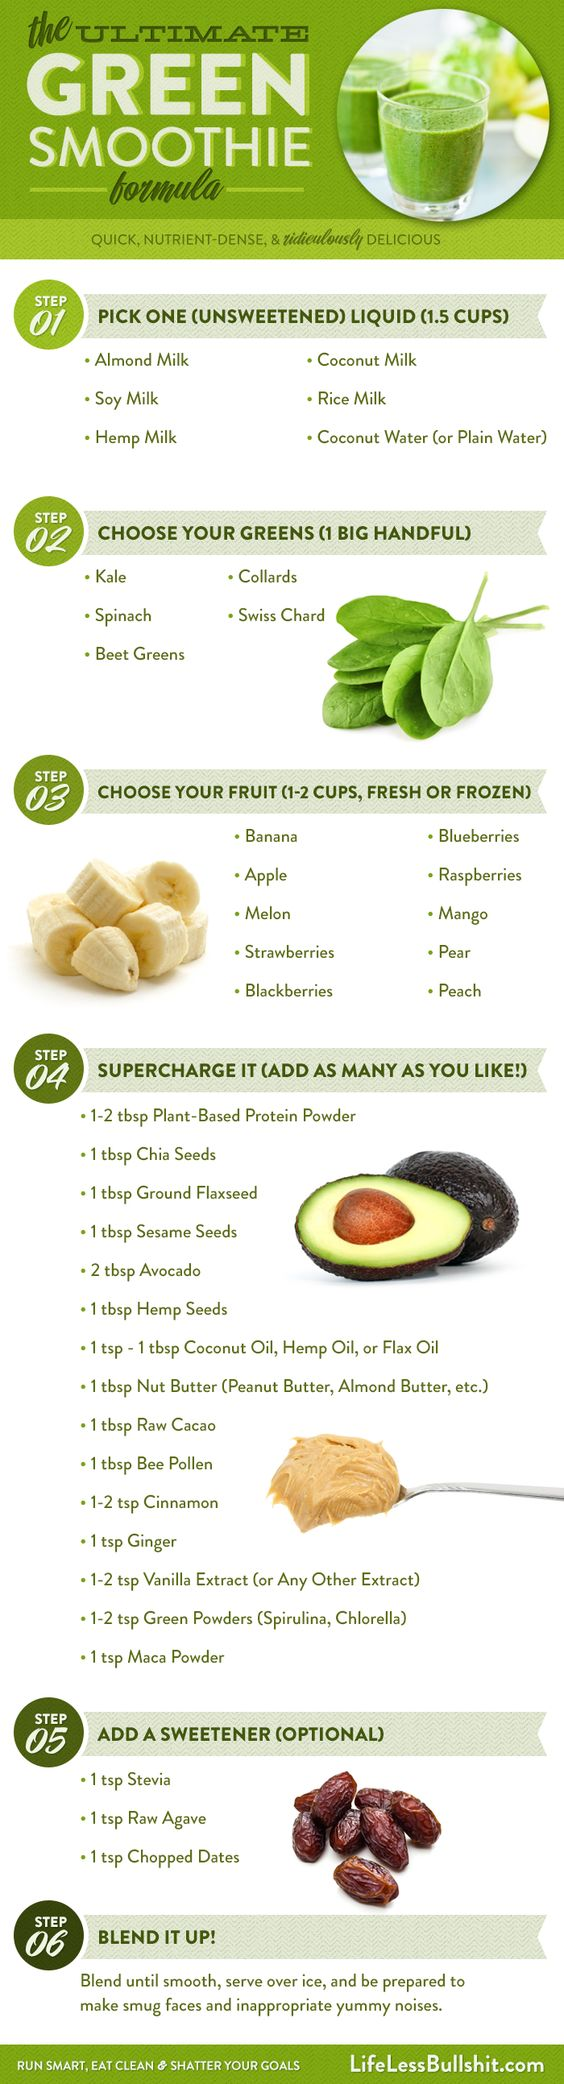 Formula for the ultimate green smoothie.